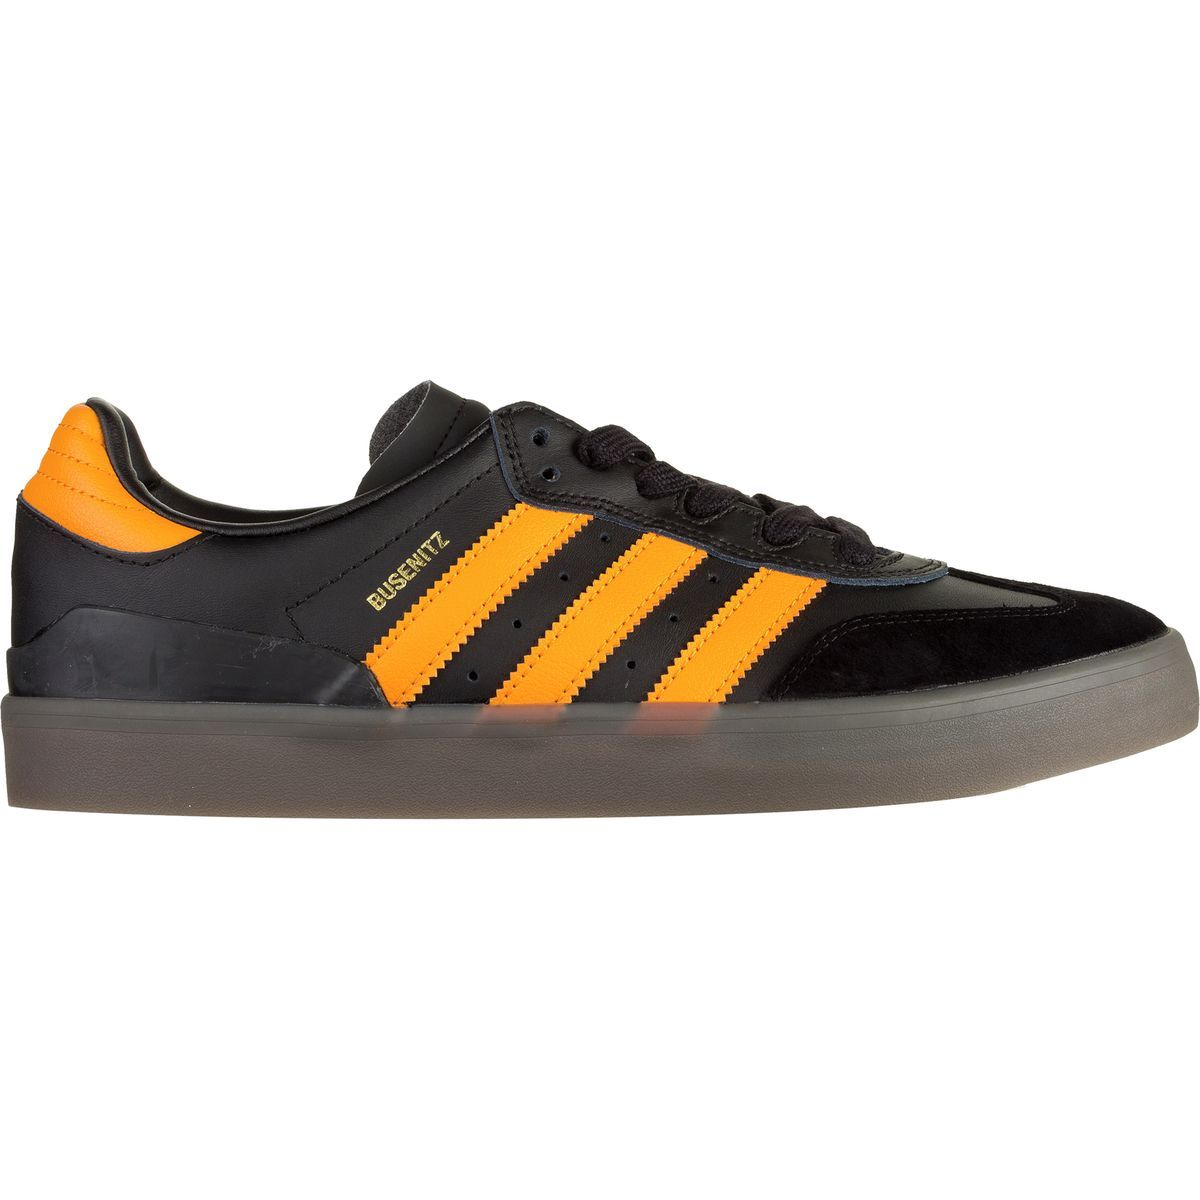 9a7d0d9b58ff2 Adidas - Busenitz Vulc Samba Edition Shoe - Men's - Core Black ...